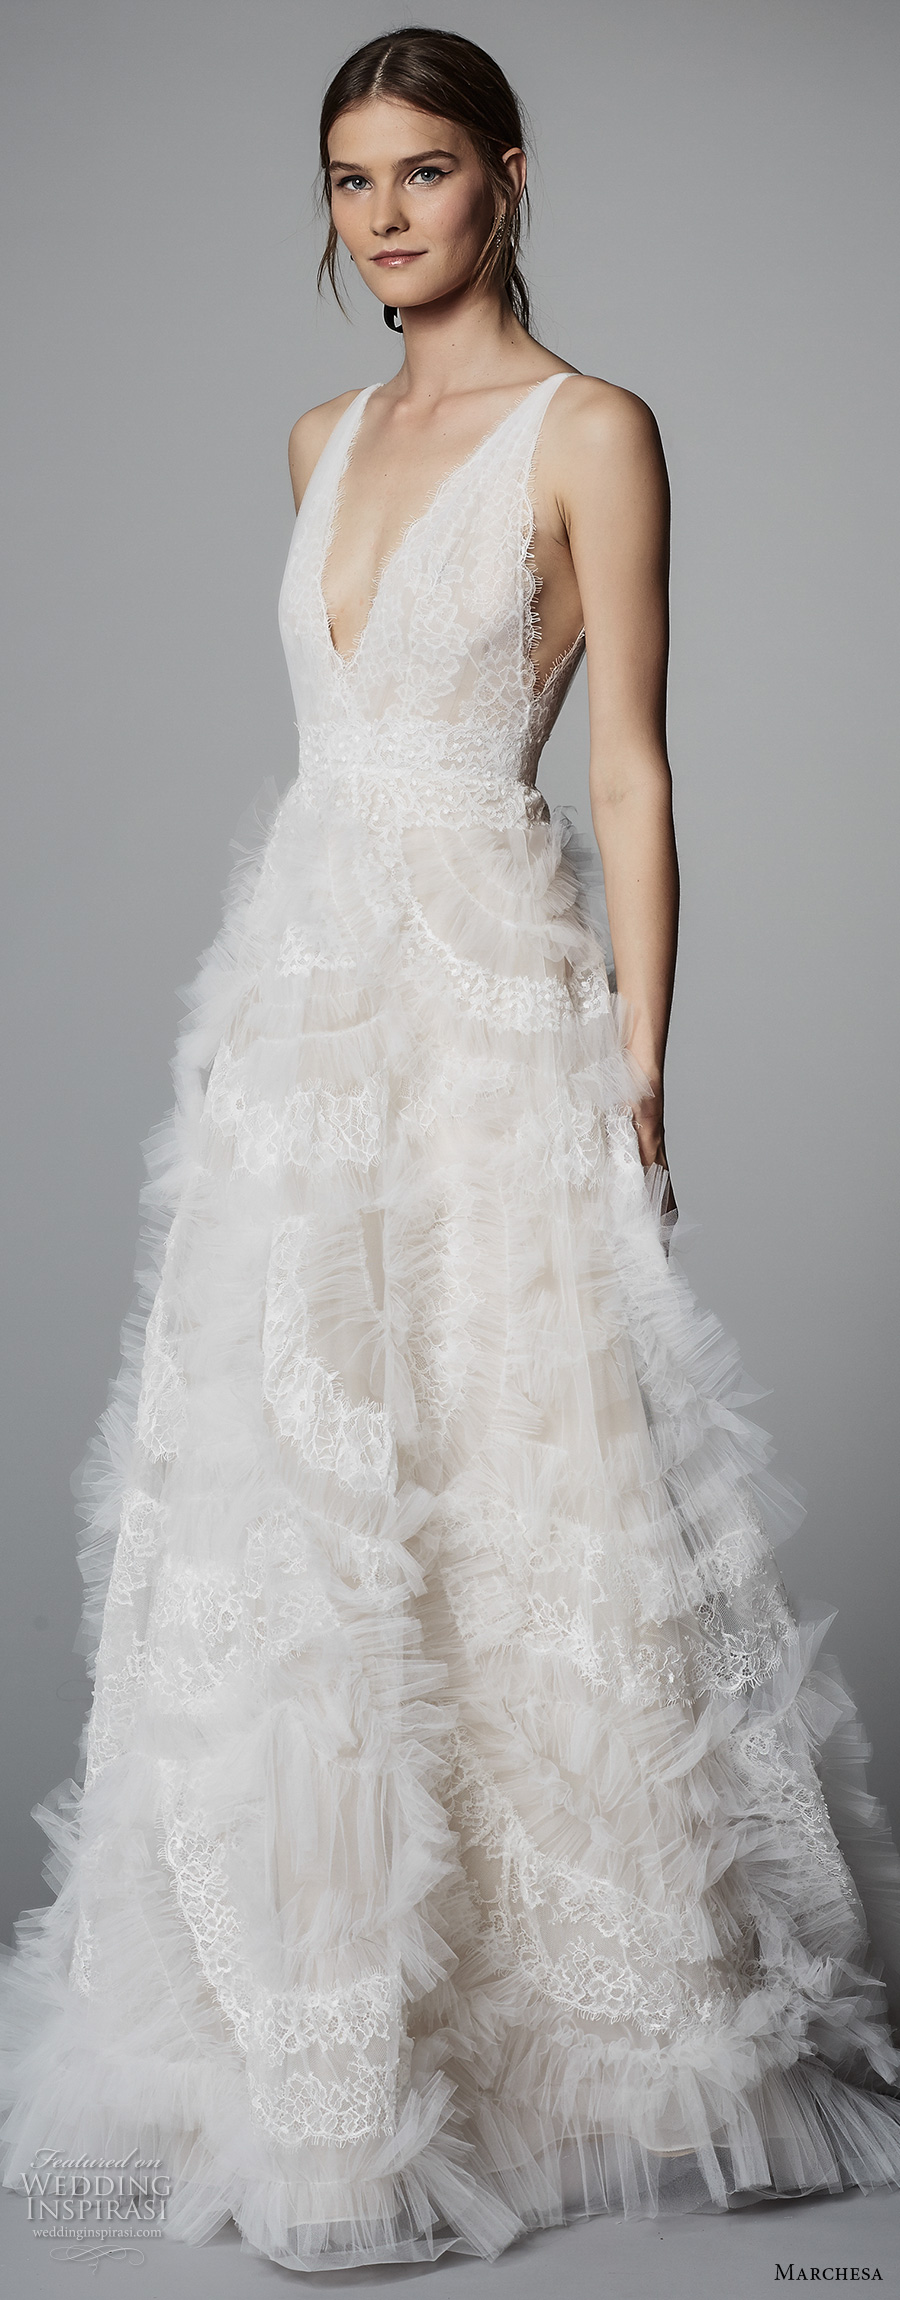 marchesa wedding dresses marchesa bridal 2018 wedding dresses new york 5705